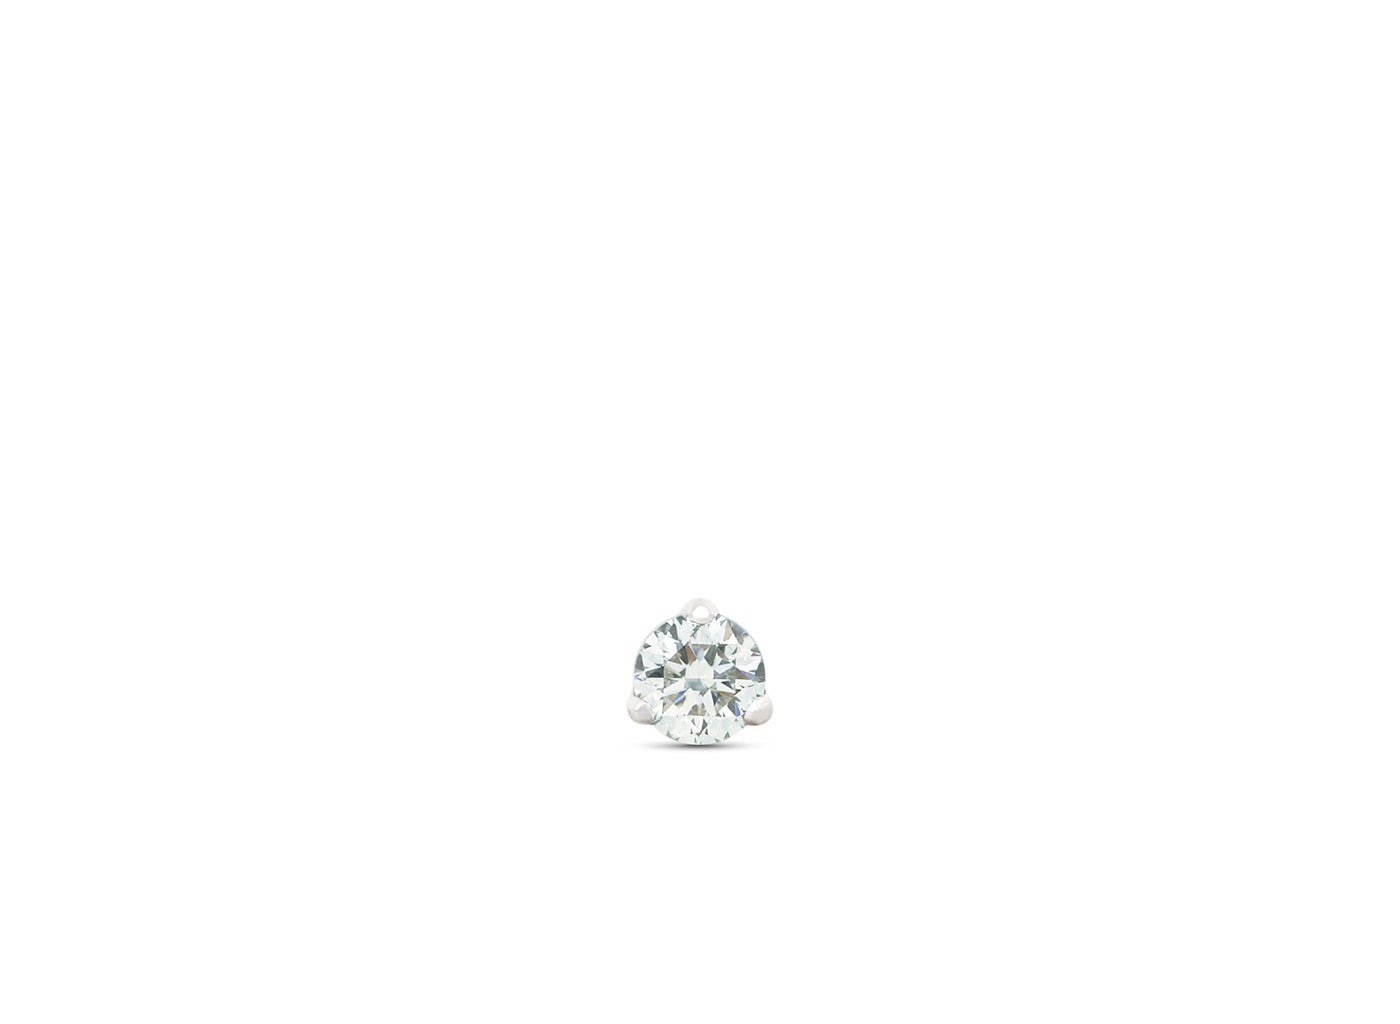 Front view of Solitaire 1/10 carat earring with white diamond